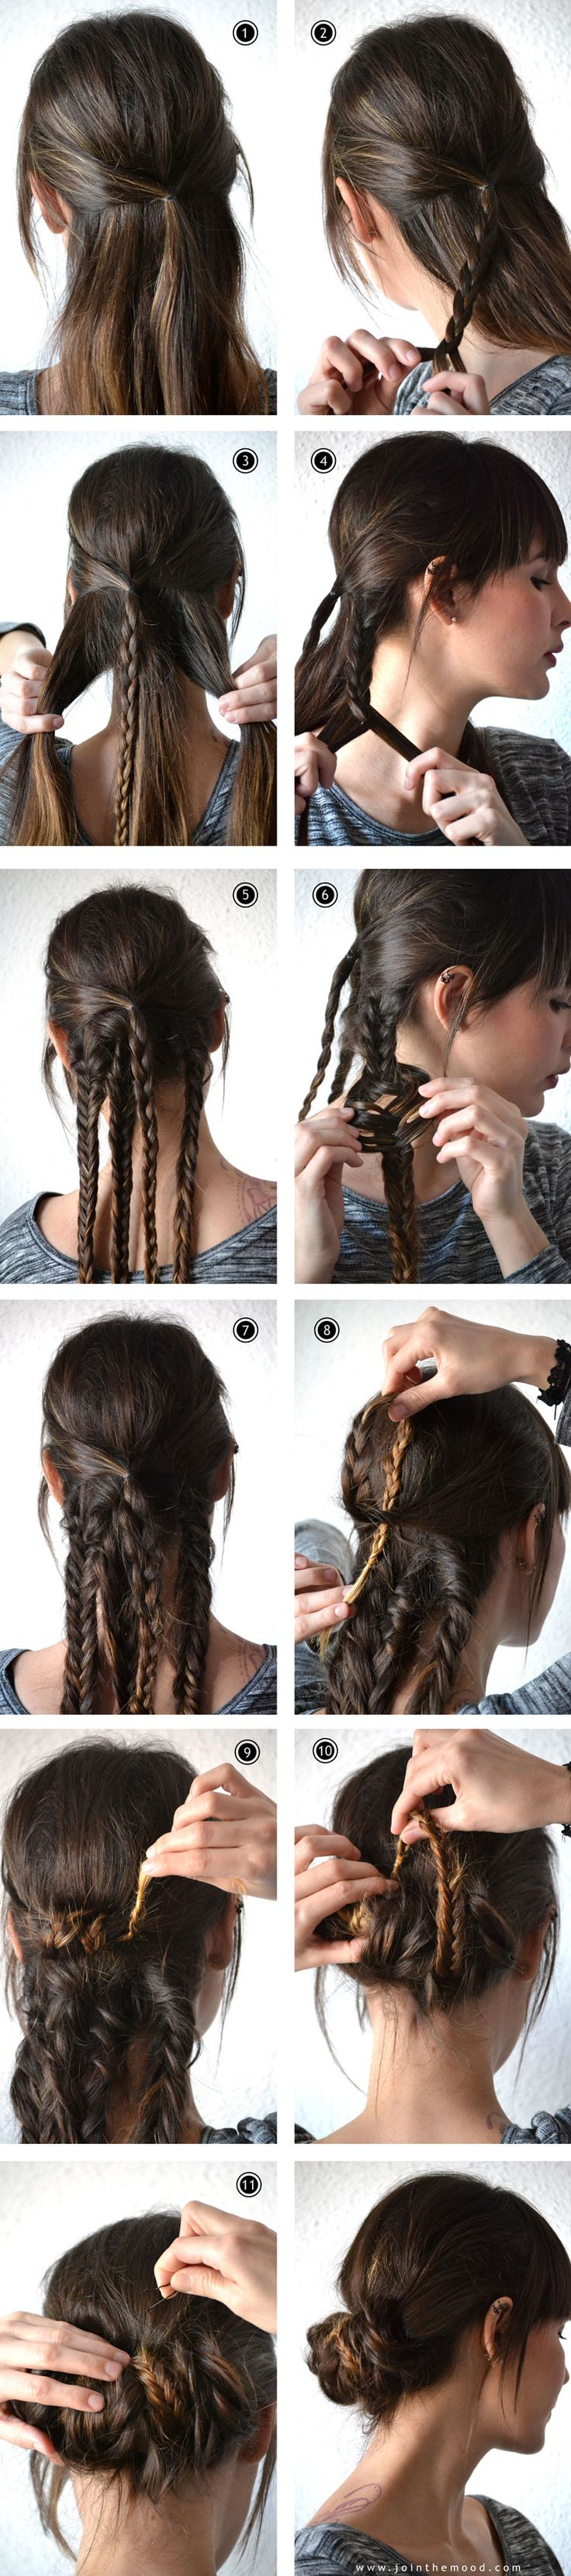 Simple, Convenient And Stylish Hair Styles For Summer 2015